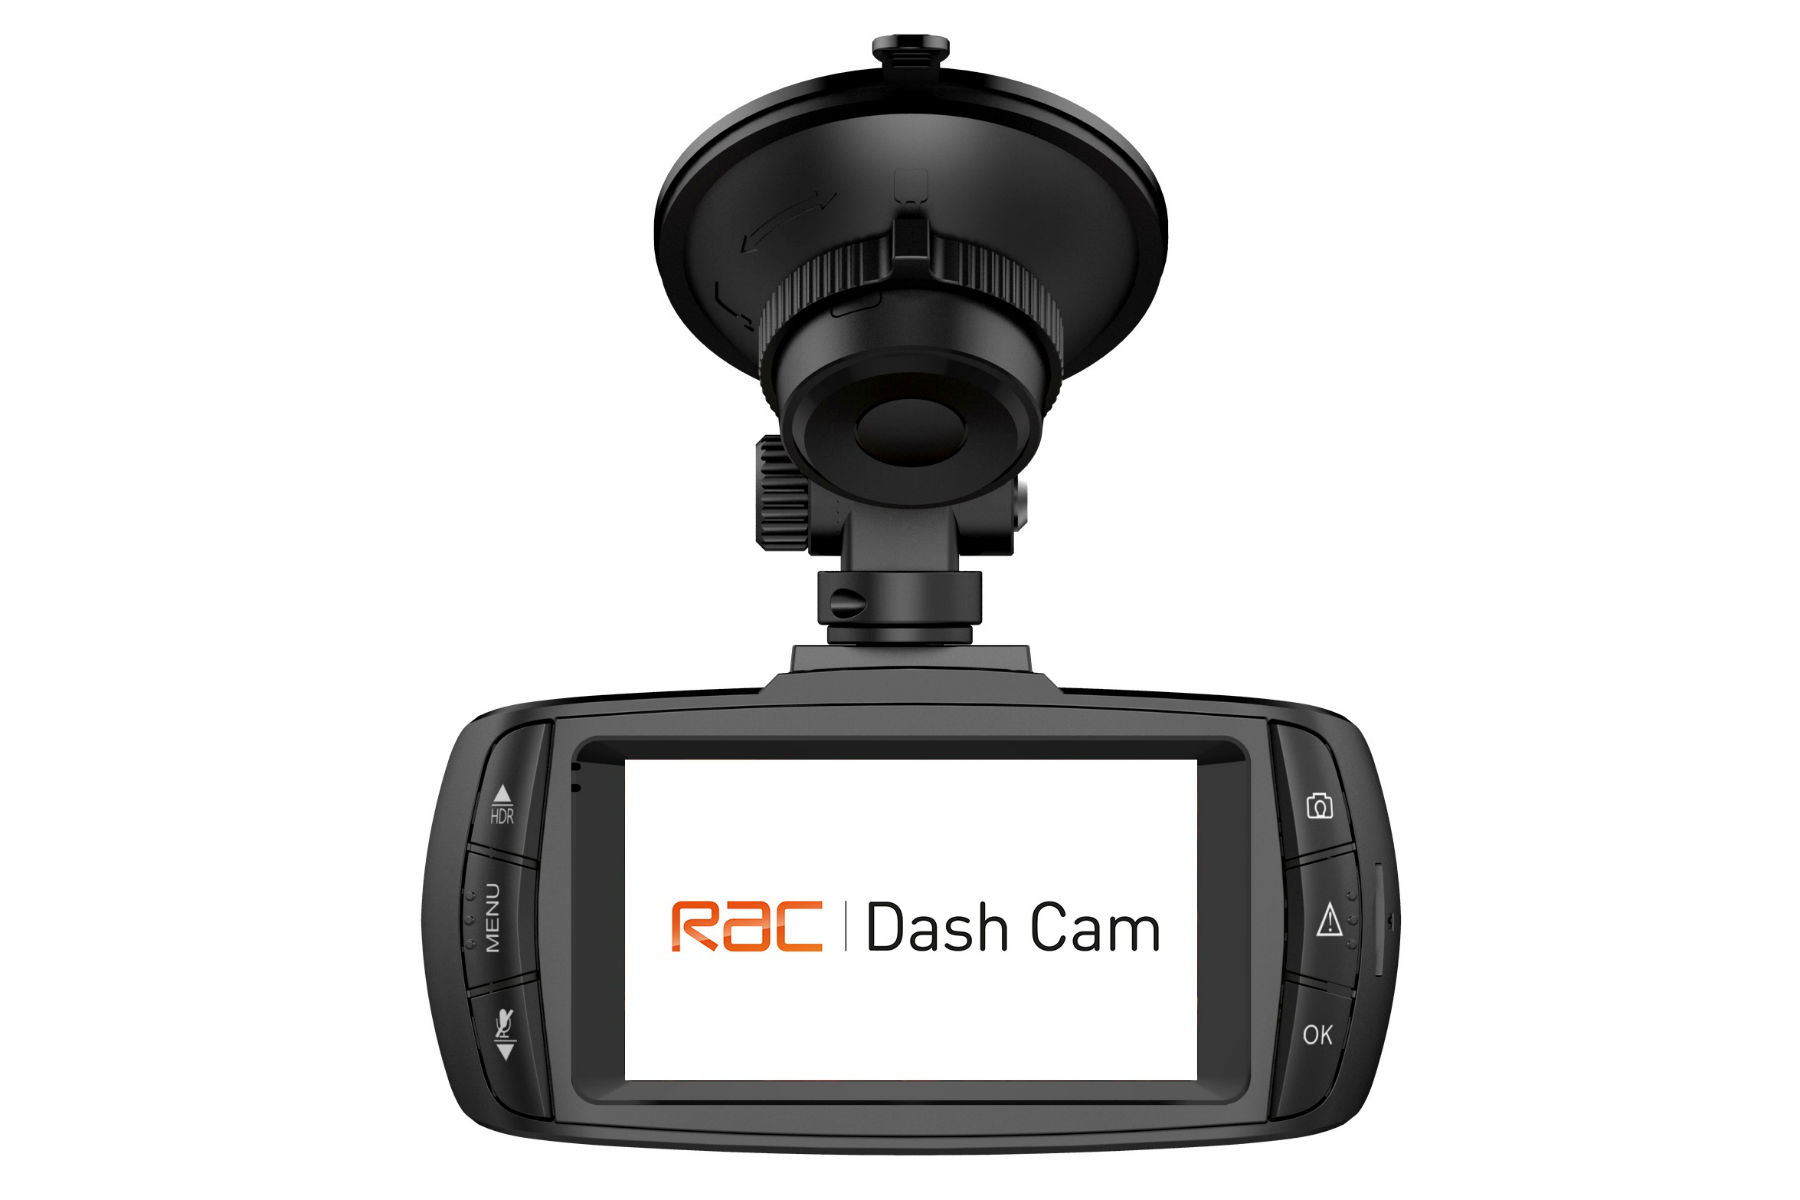 Nearly 3 million UK drivers now use dash cams